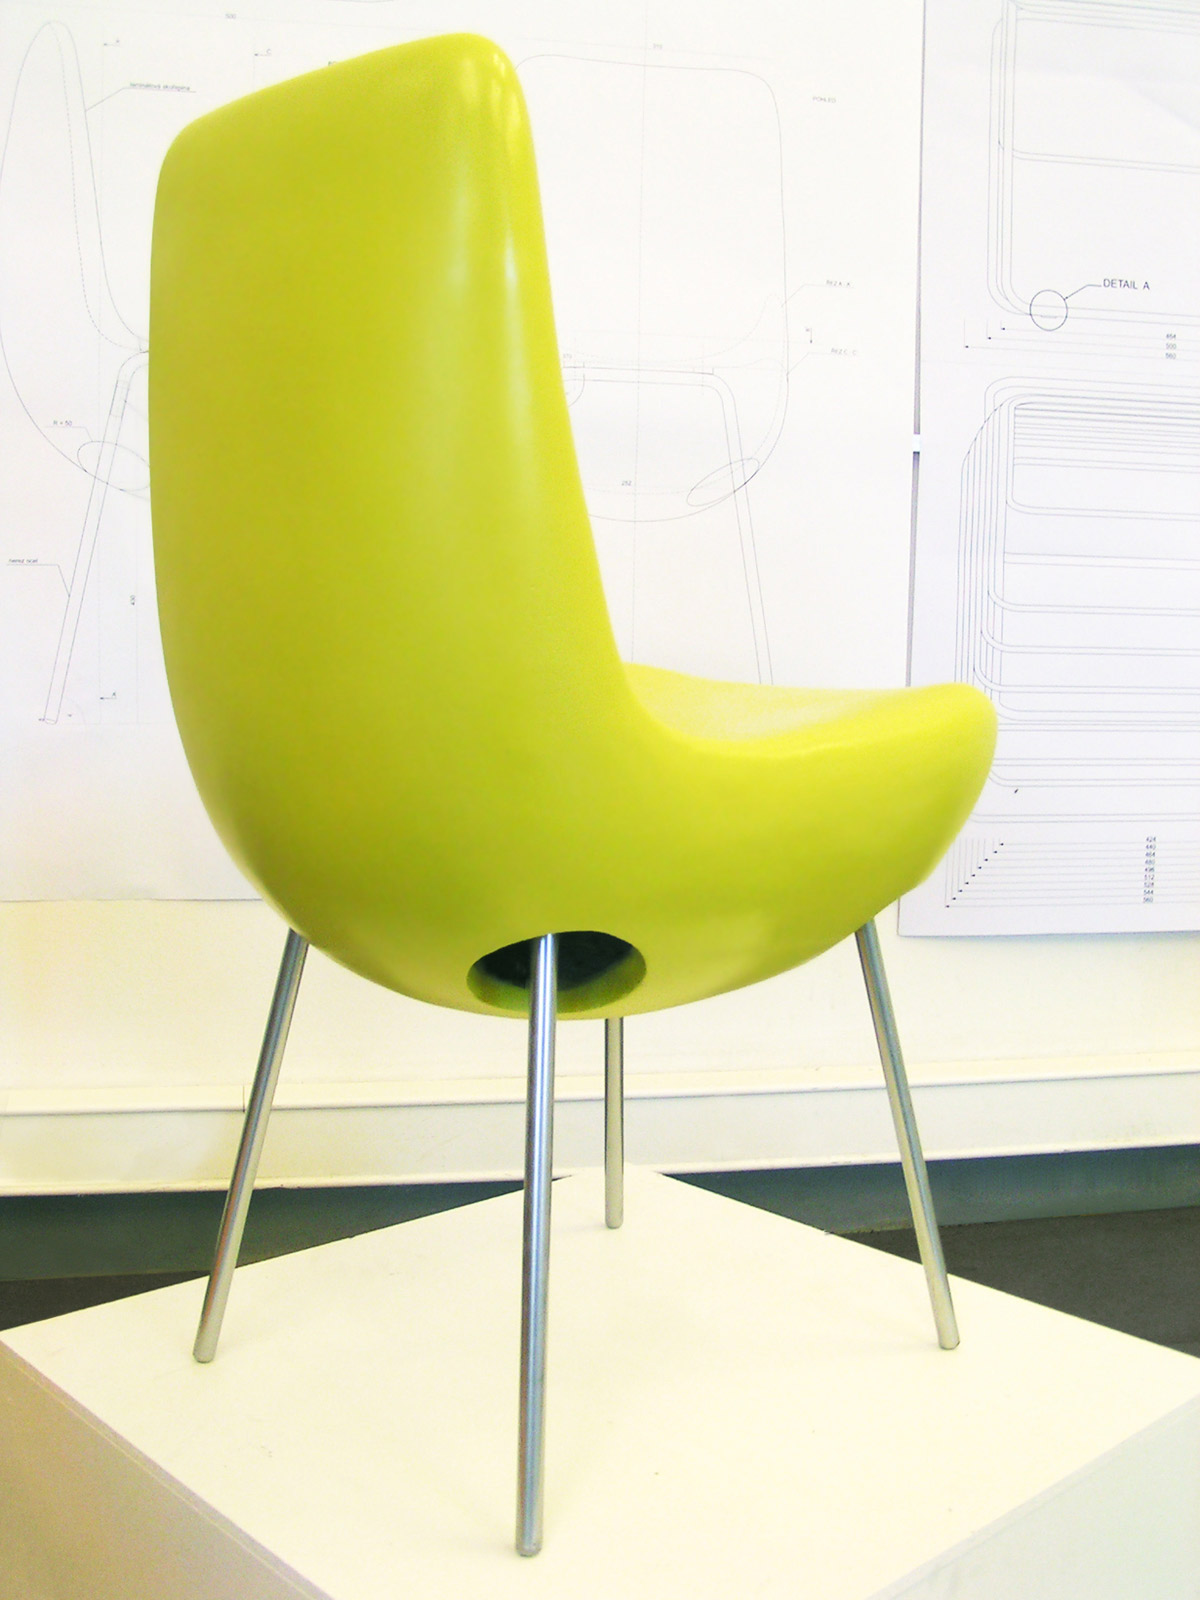 the chair is inspired with the new architectural design of National library in Prague